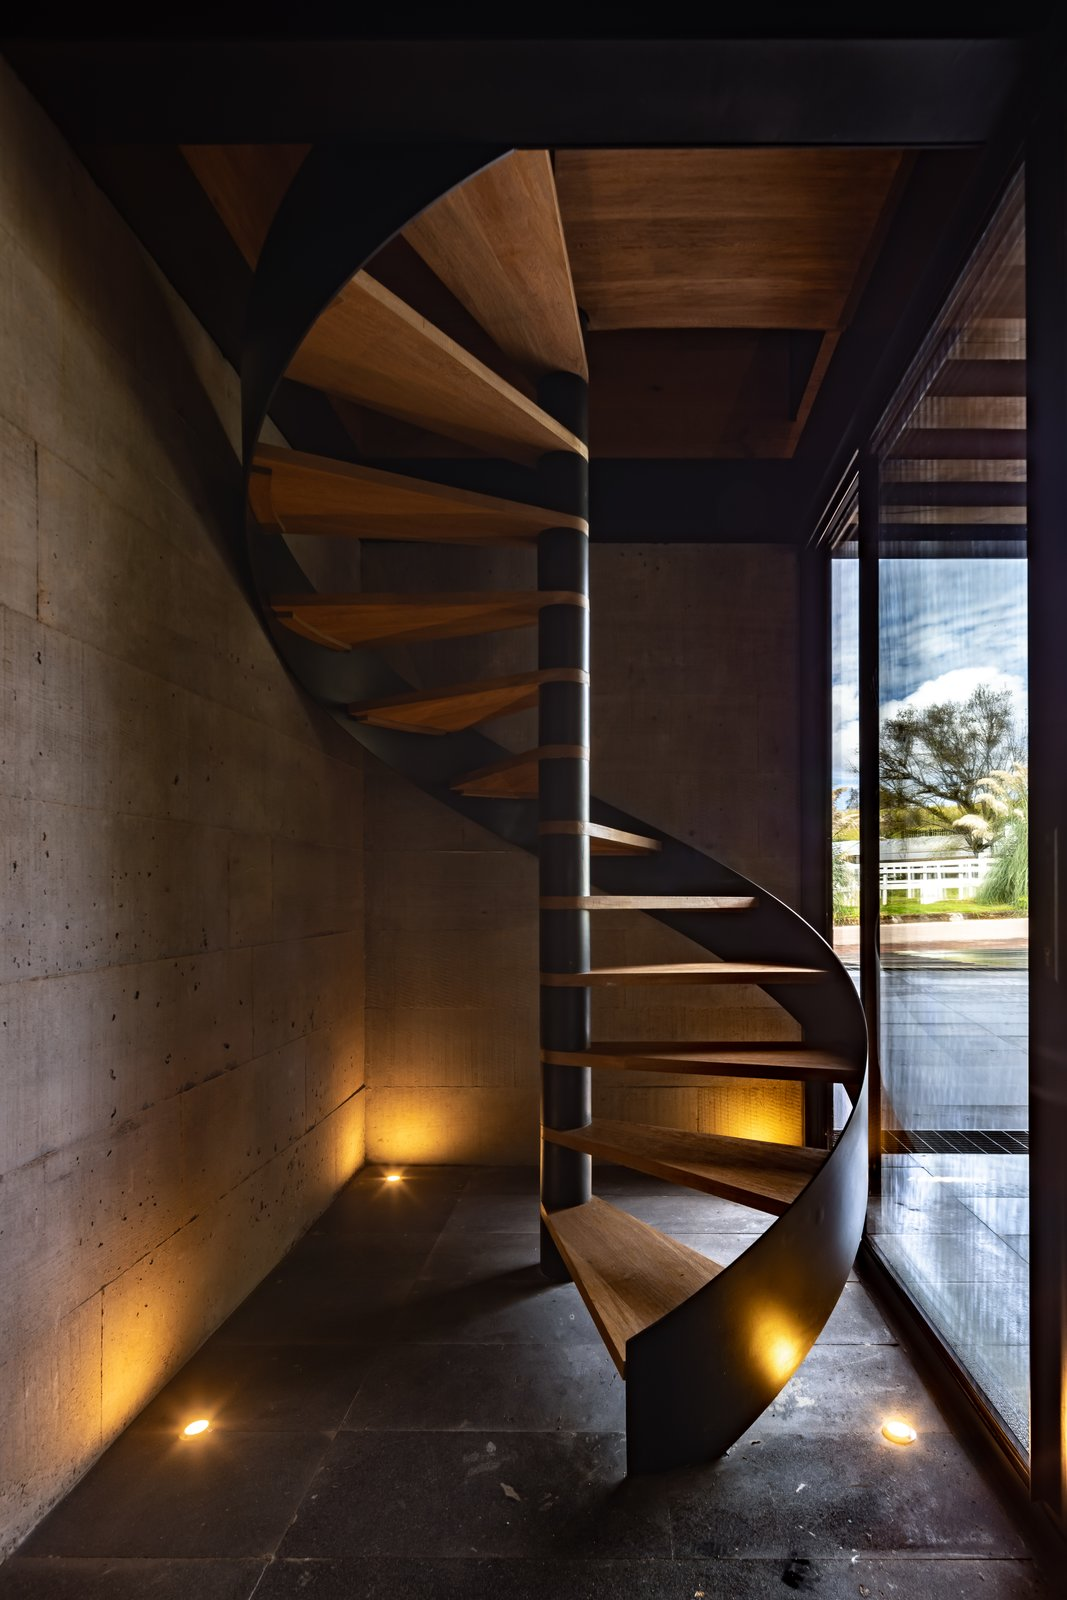 Staircase, Metal, and Wood  Staircase Wood Metal Photos from L7 Home